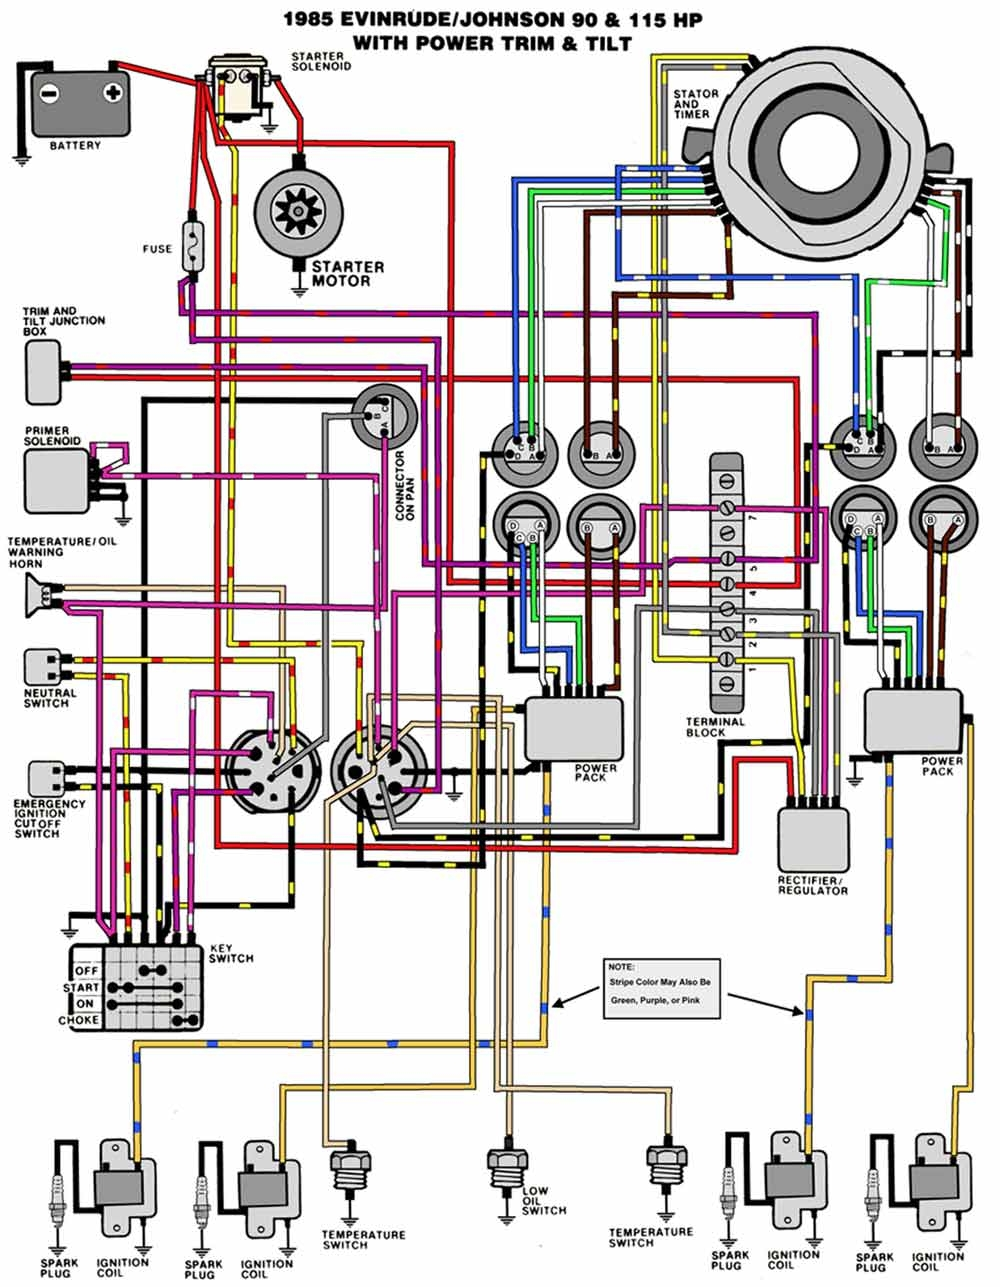 mercury outboard wiring diagram Collection-johnson wiring diagram circuit connection diagram u2022 rh scooplocal co Inboard Outboard Diagram OMC Outboard Bracket 9-i